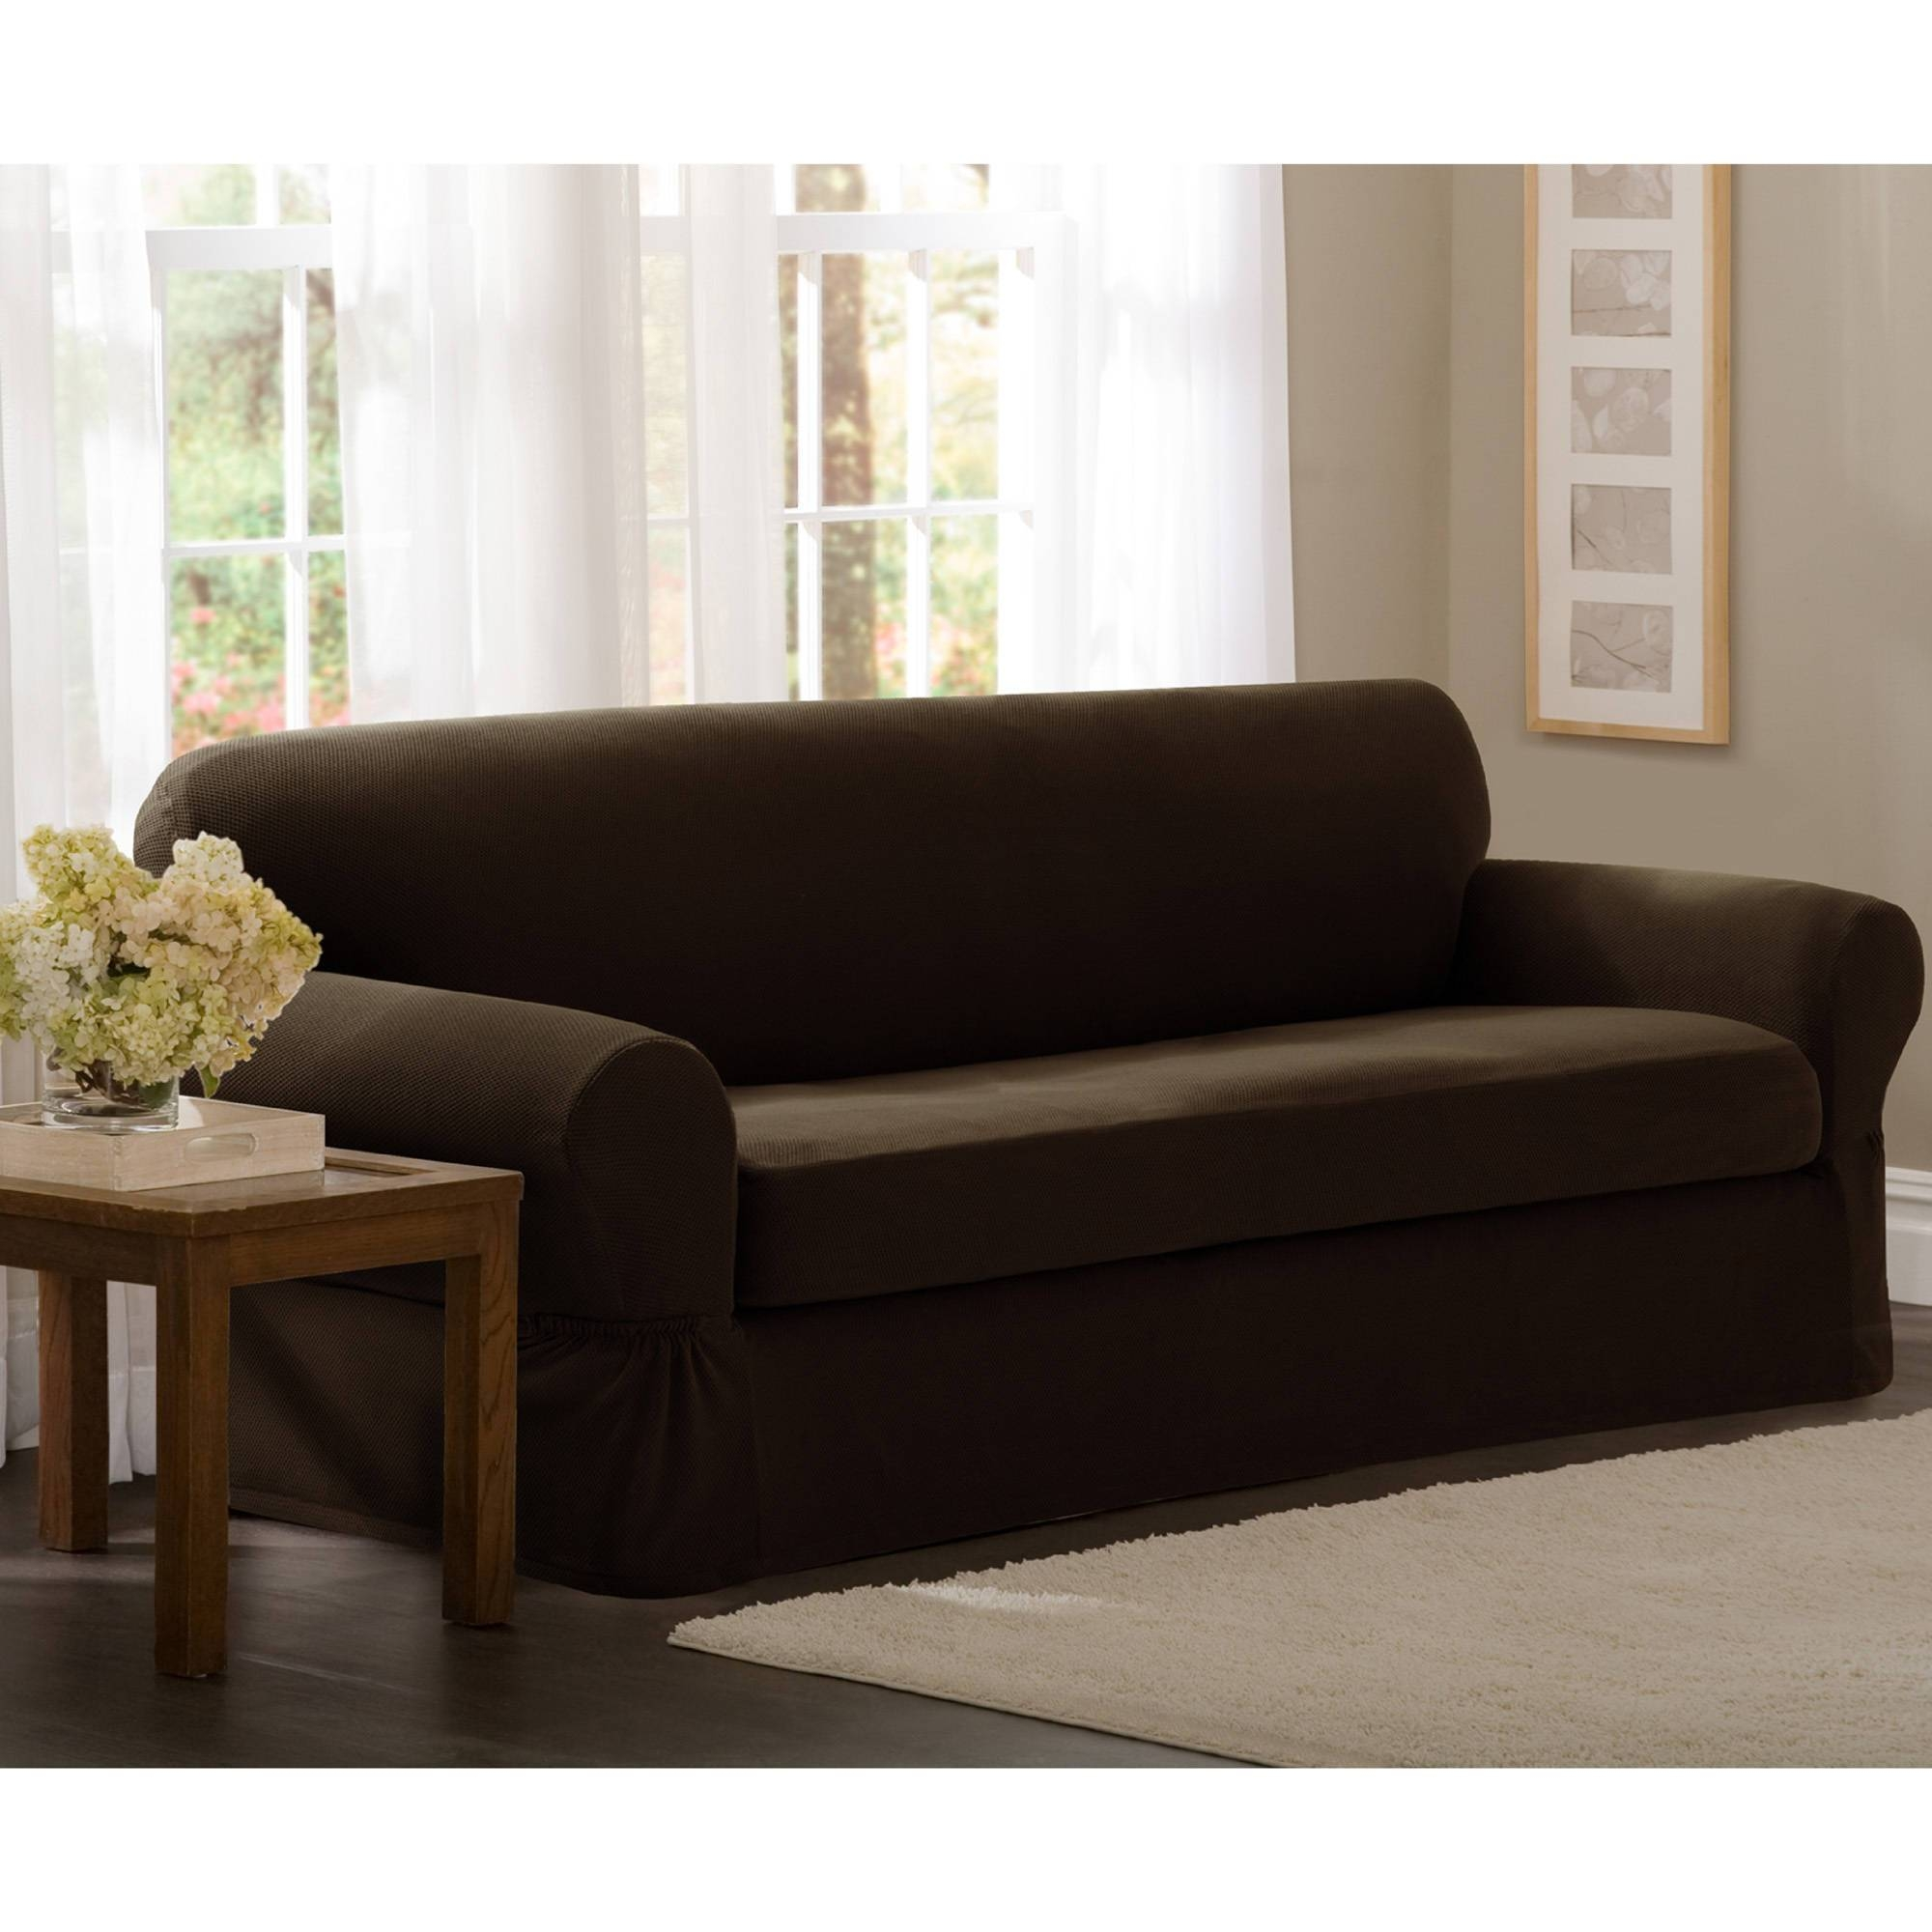 Furniture: Couch Protector | Couch Covers Walmart | Target Sofa Covers throughout Chaise Sofa Covers (Image 4 of 30)